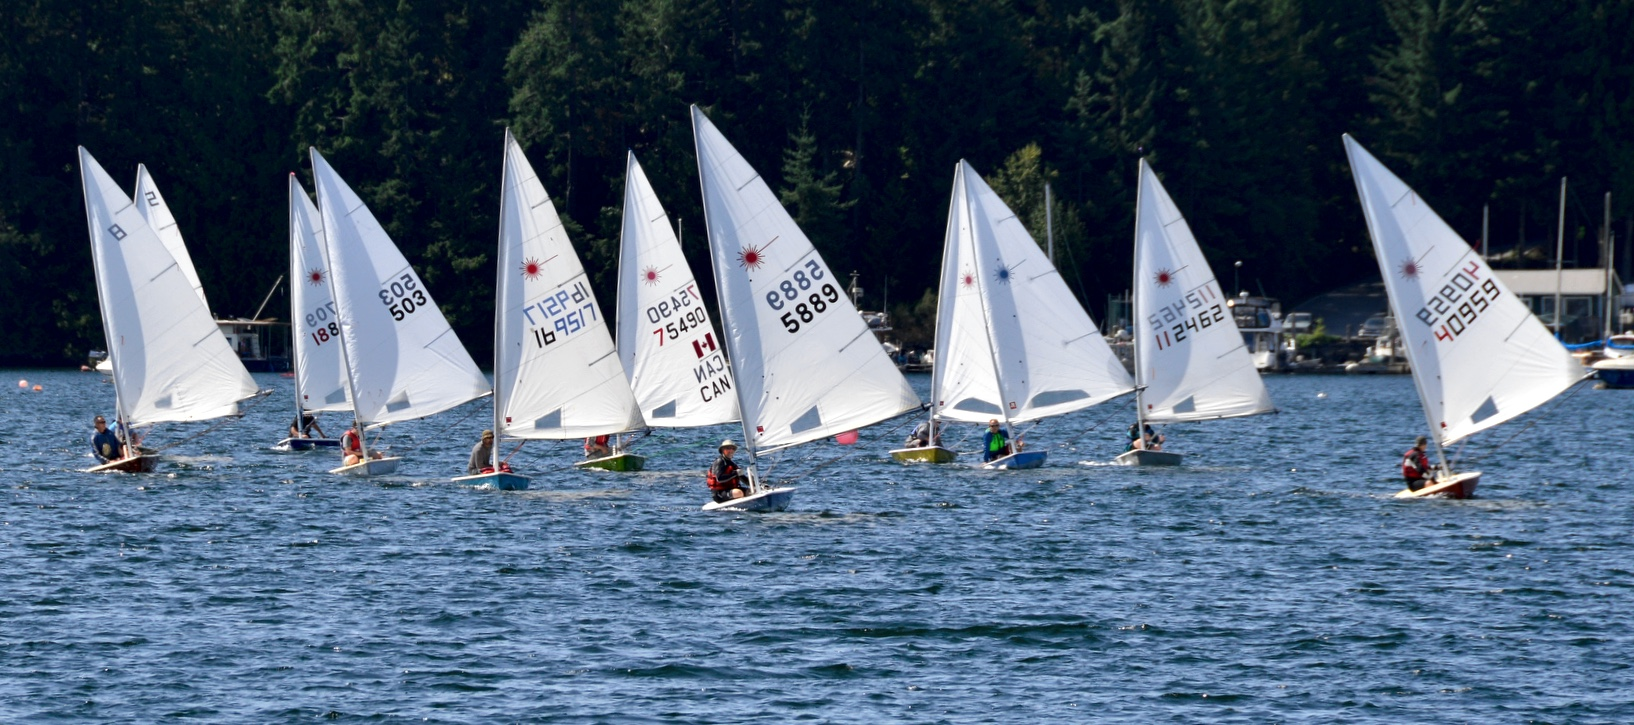 A downwind section of the 6th Annual Poise Cove Regatta July 16th, 2017